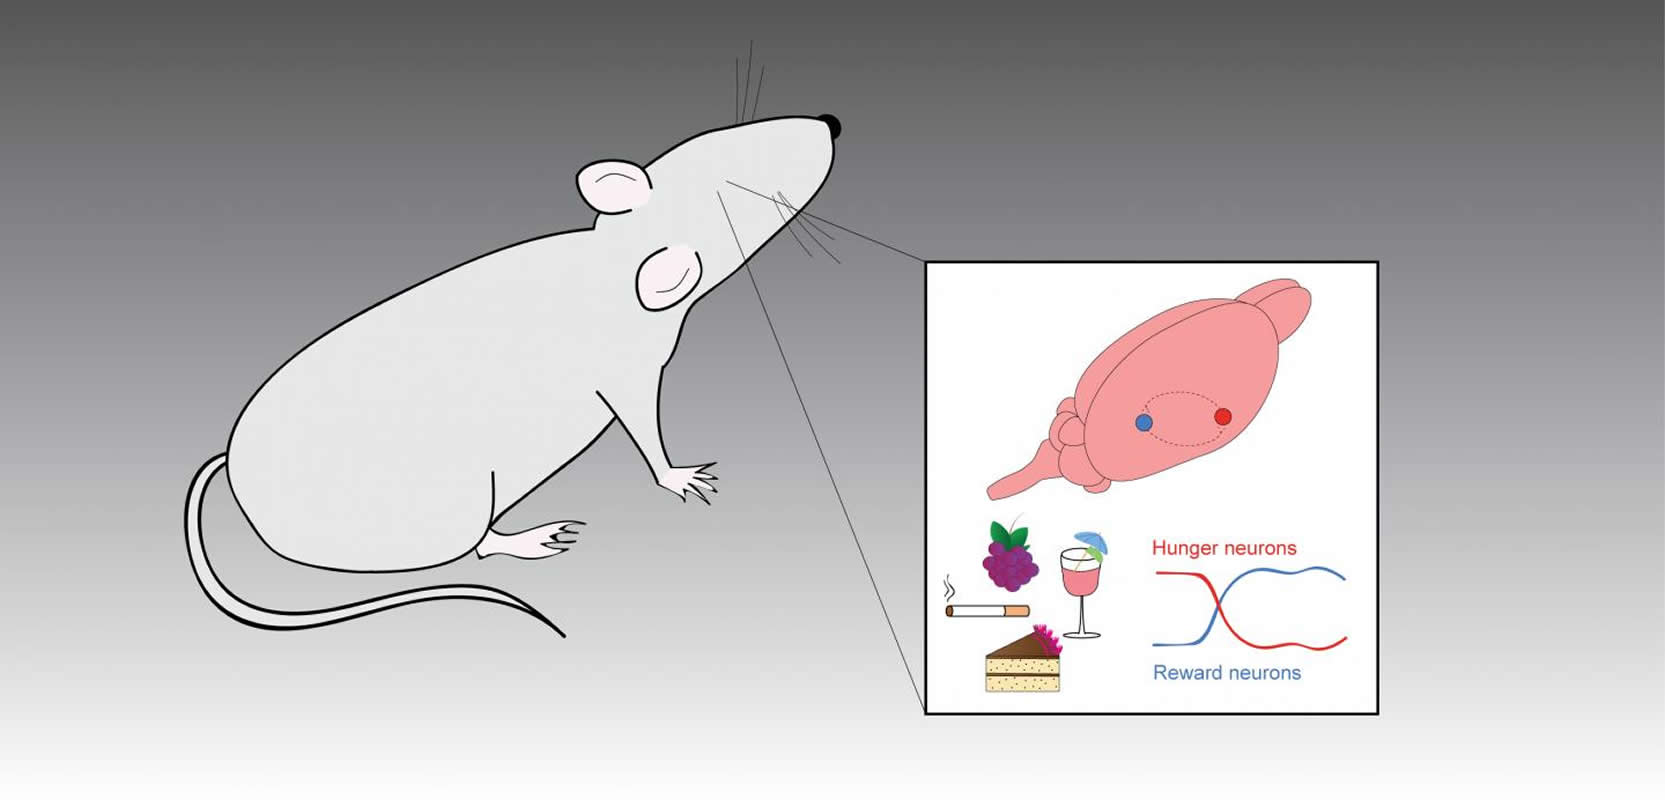 This shows a mouse and a diagram of a mouse brain